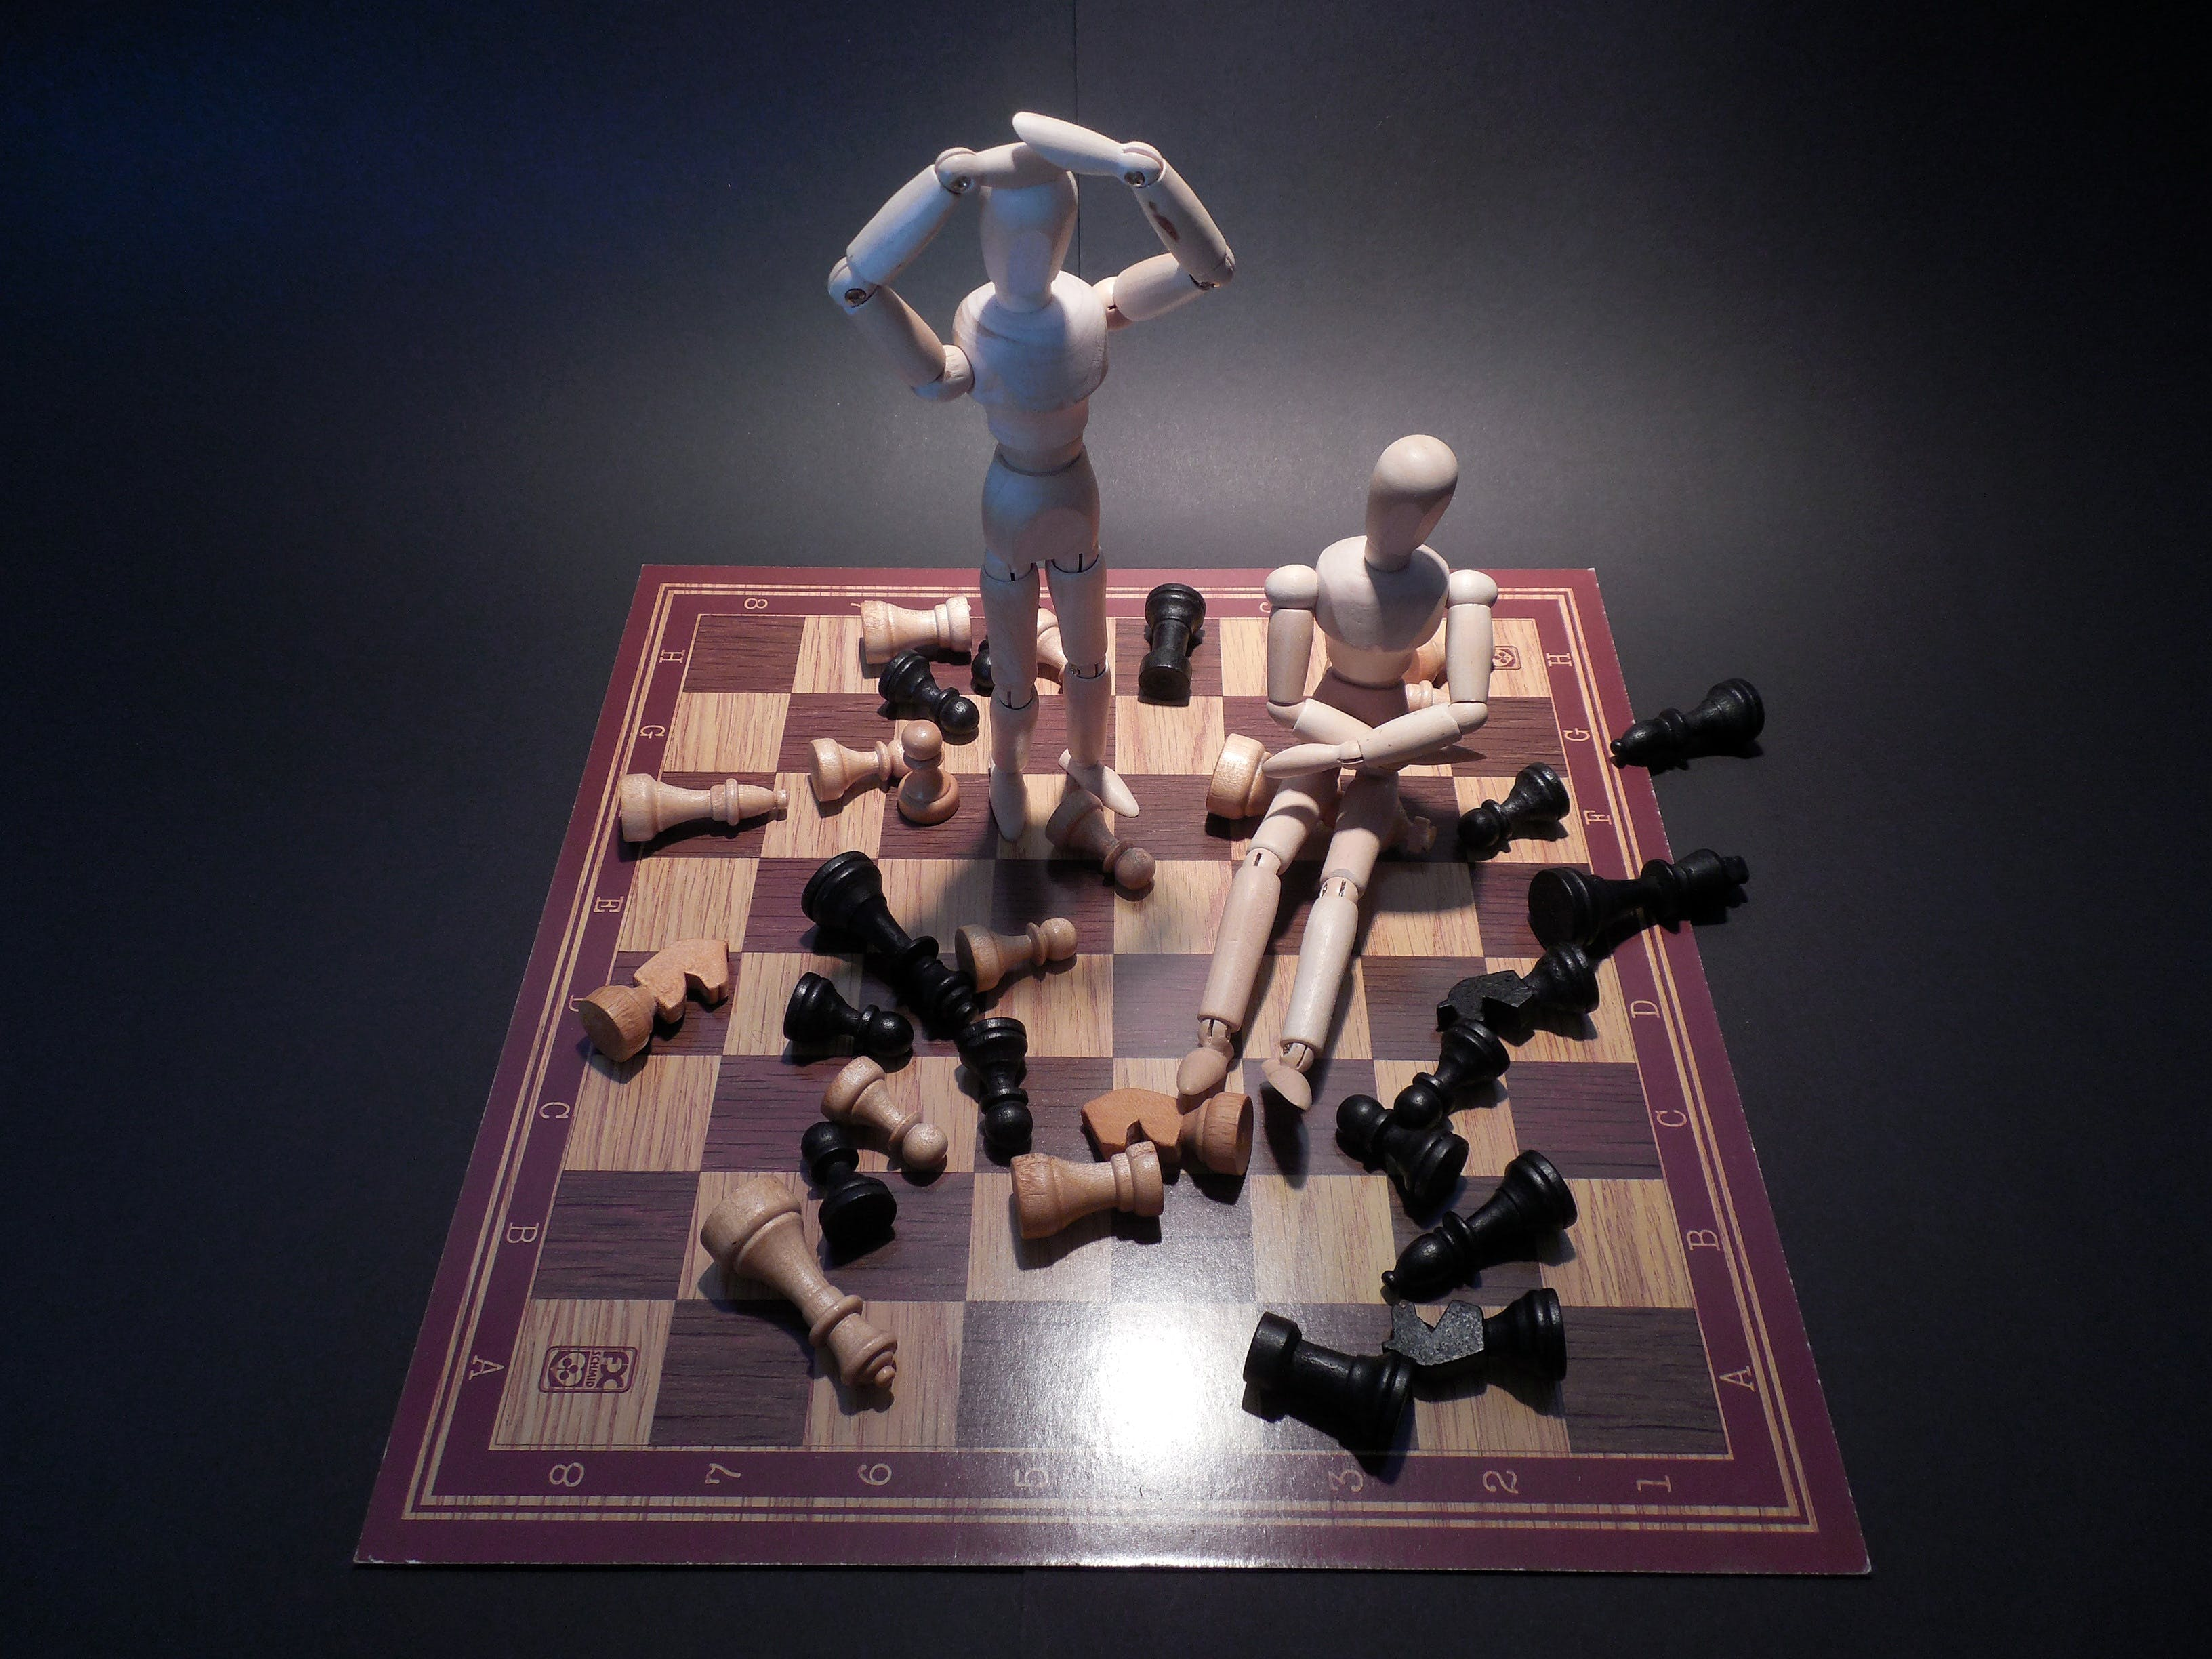 wooden figurines on chessboard with scattered chess pieces